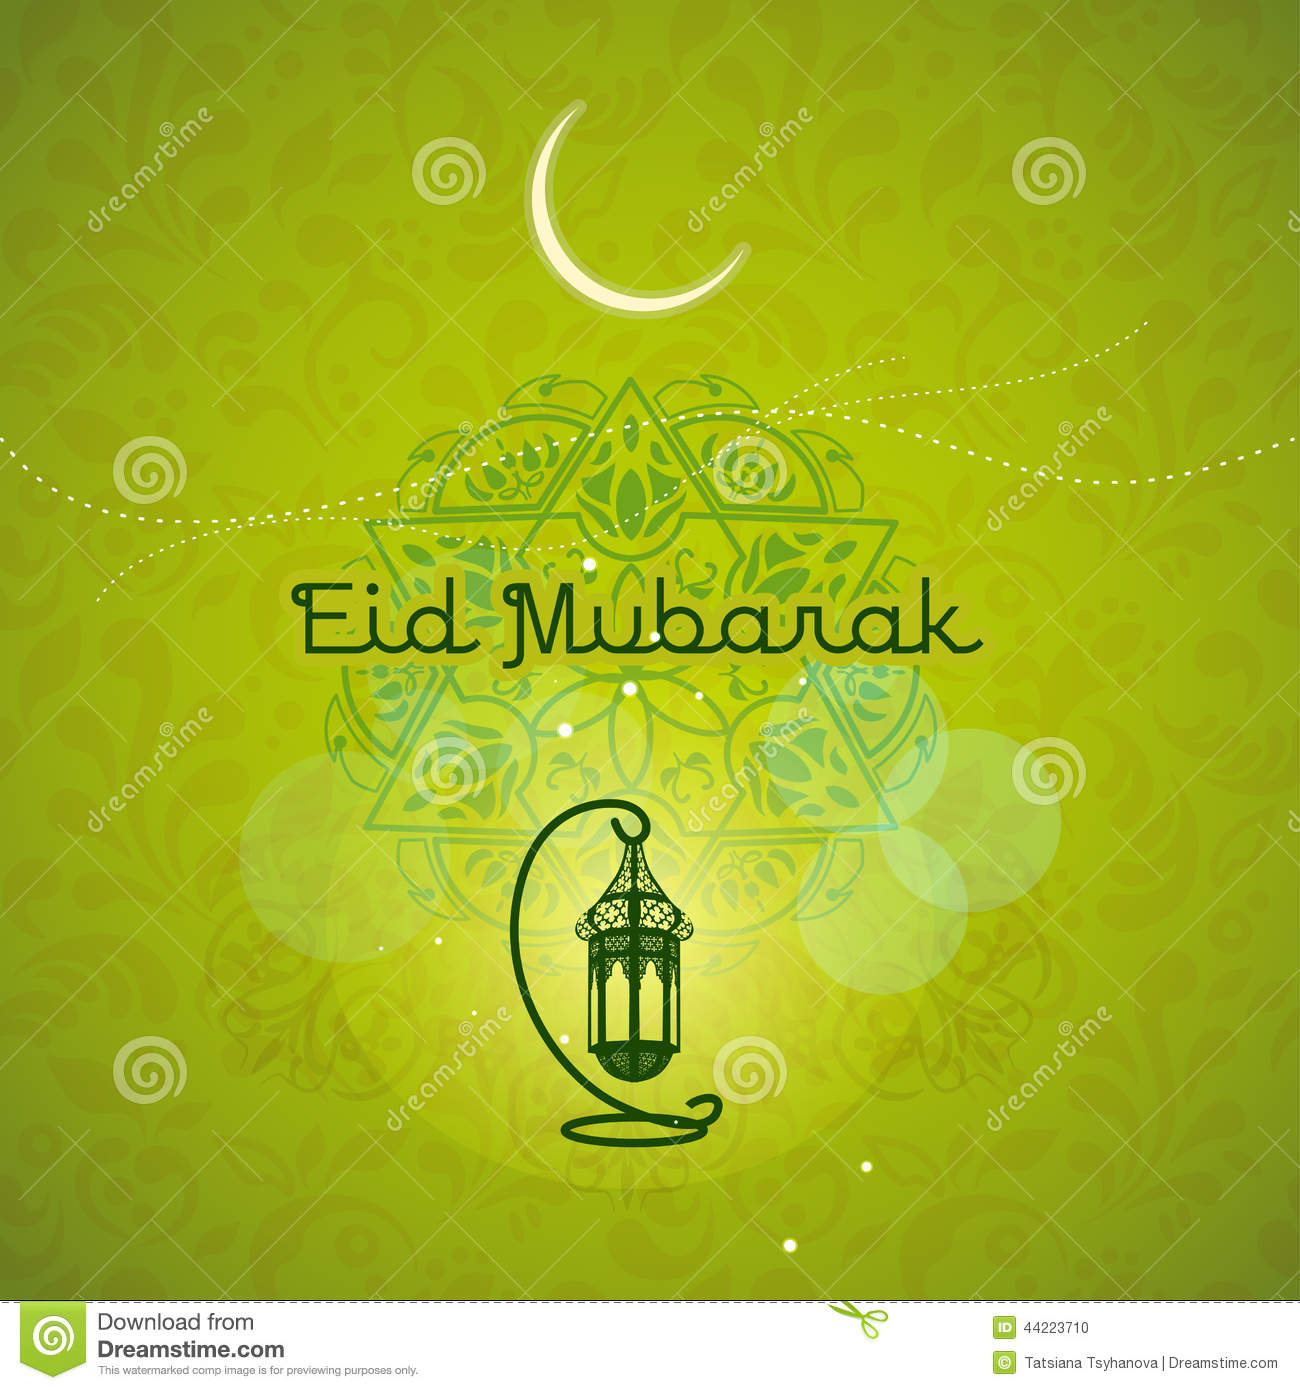 Simple Board Eid Al-Fitr Decorations - eid-ul-fitr-eid-mubarak-greeting-card-arabic-pattern-decorated-light-beige-background-mosque-morning-nature-background-holy-44223710  HD_512657 .jpg